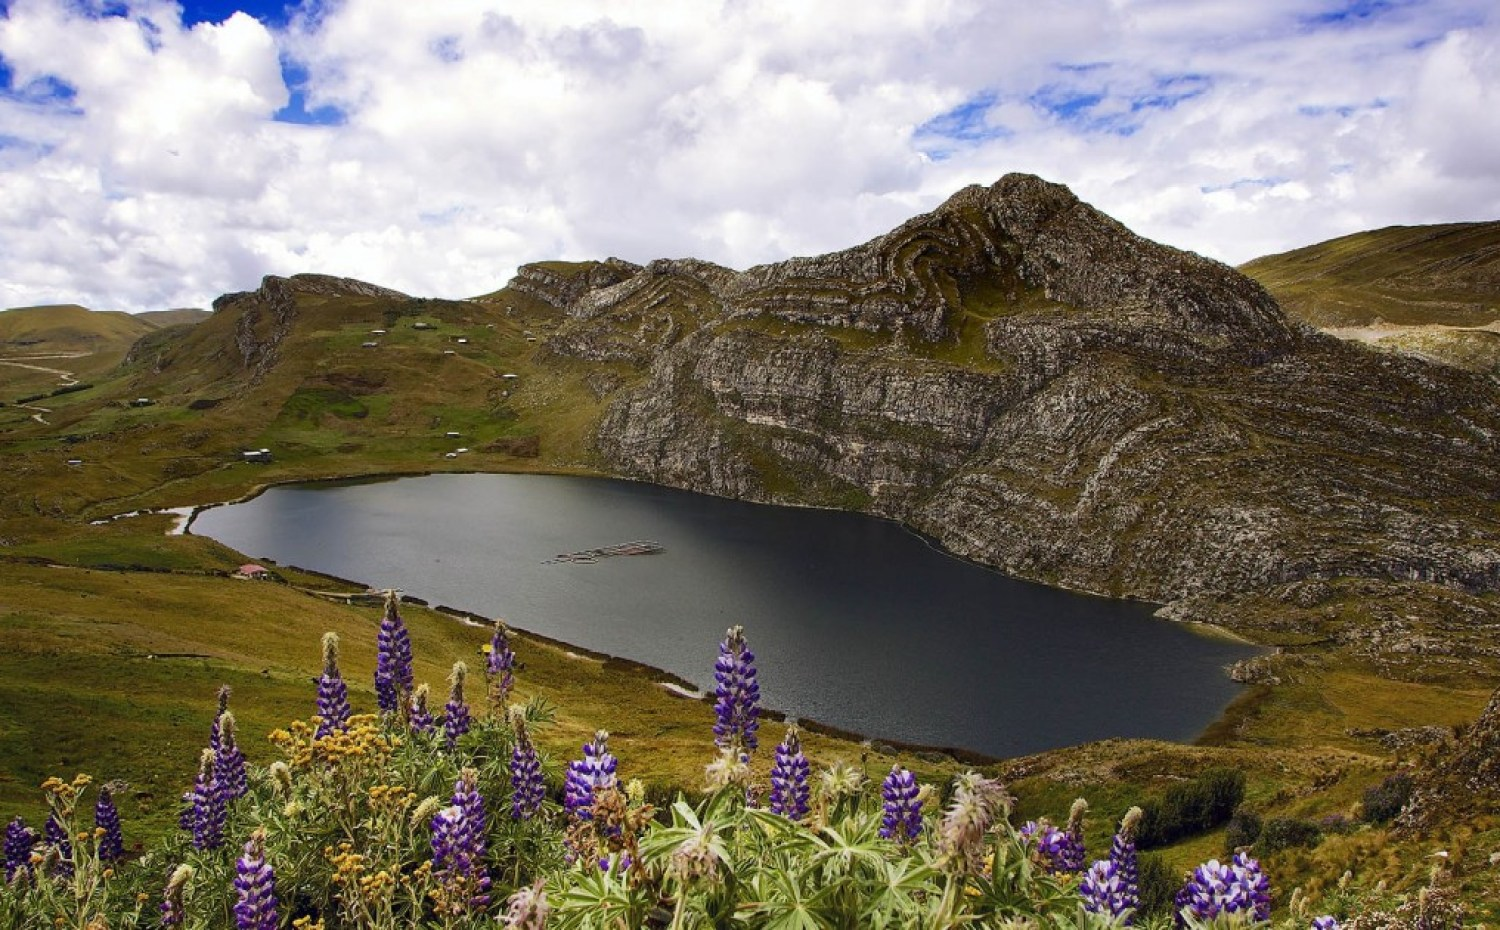 The Andes, the world's second-highest mountain range, are a picturesque scene of meadows and bare peaks, north of Cajamarca, where the Conga mine would have been located. Photo © J. Carl Ganter / Circle of Blue